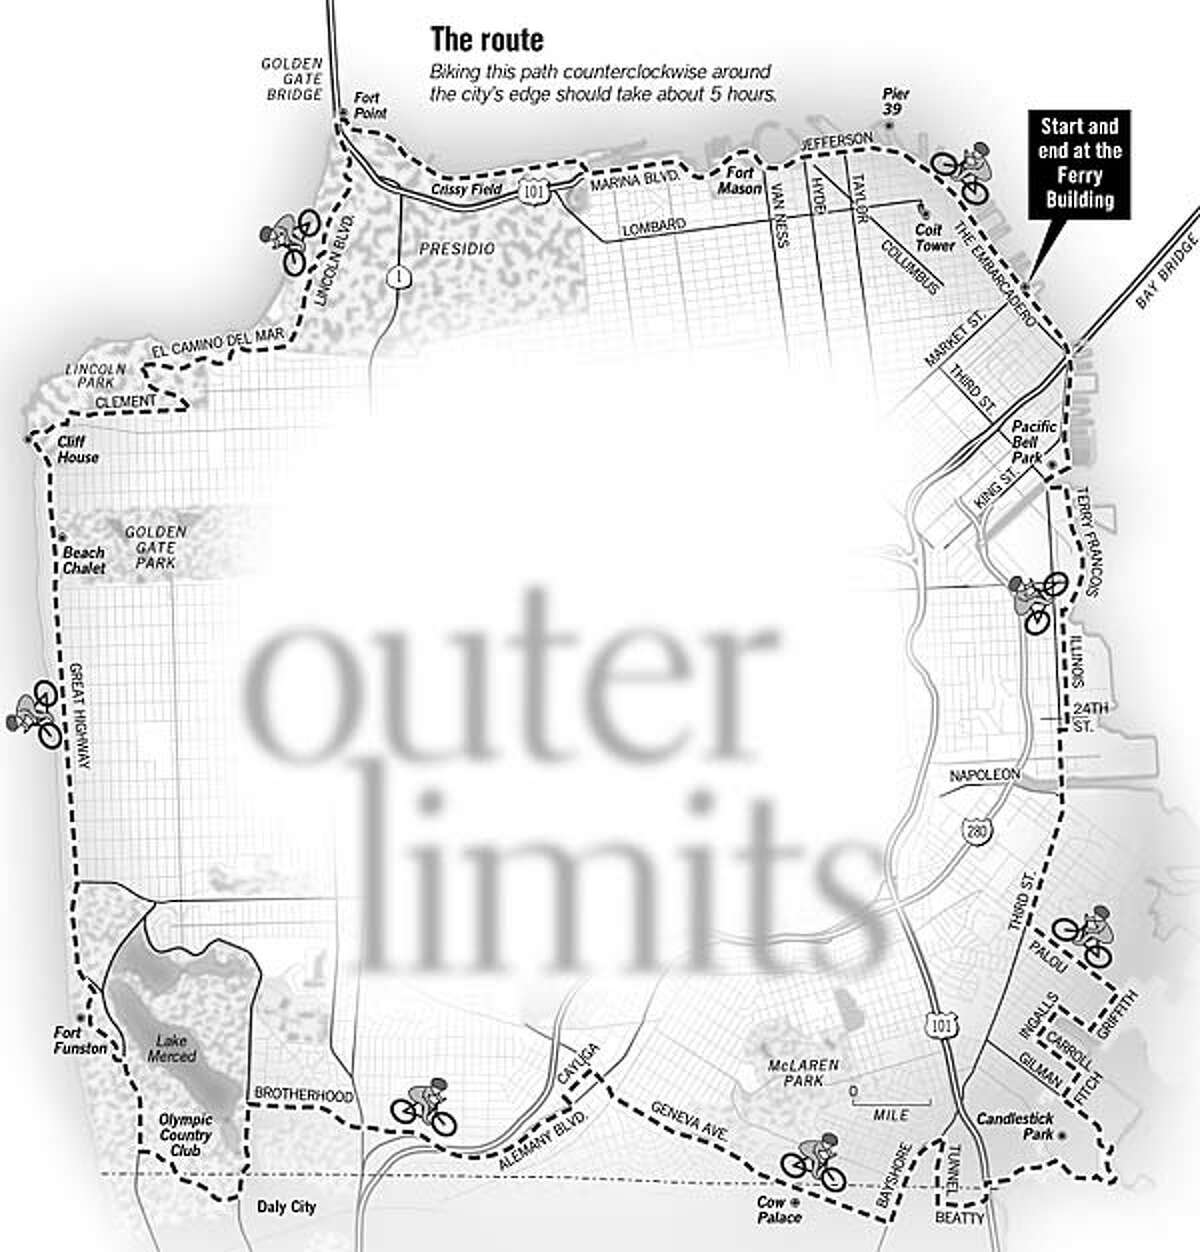 Cycling San Francisco. Chronicle graphic by Todd Trumbull